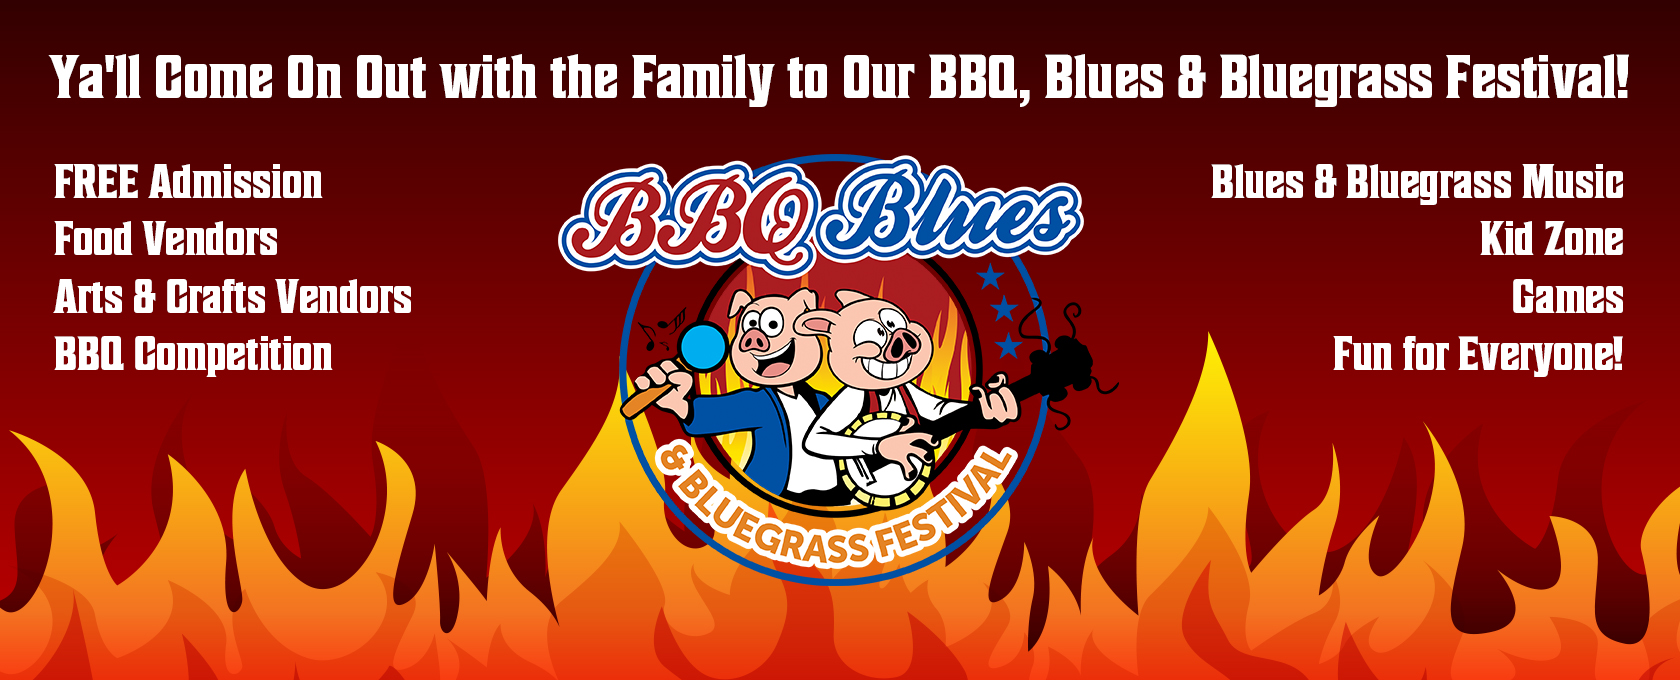 Dalton 2nd annual bbq blues and bluegrass festival vendors for Vendors wanted for craft shows 2017